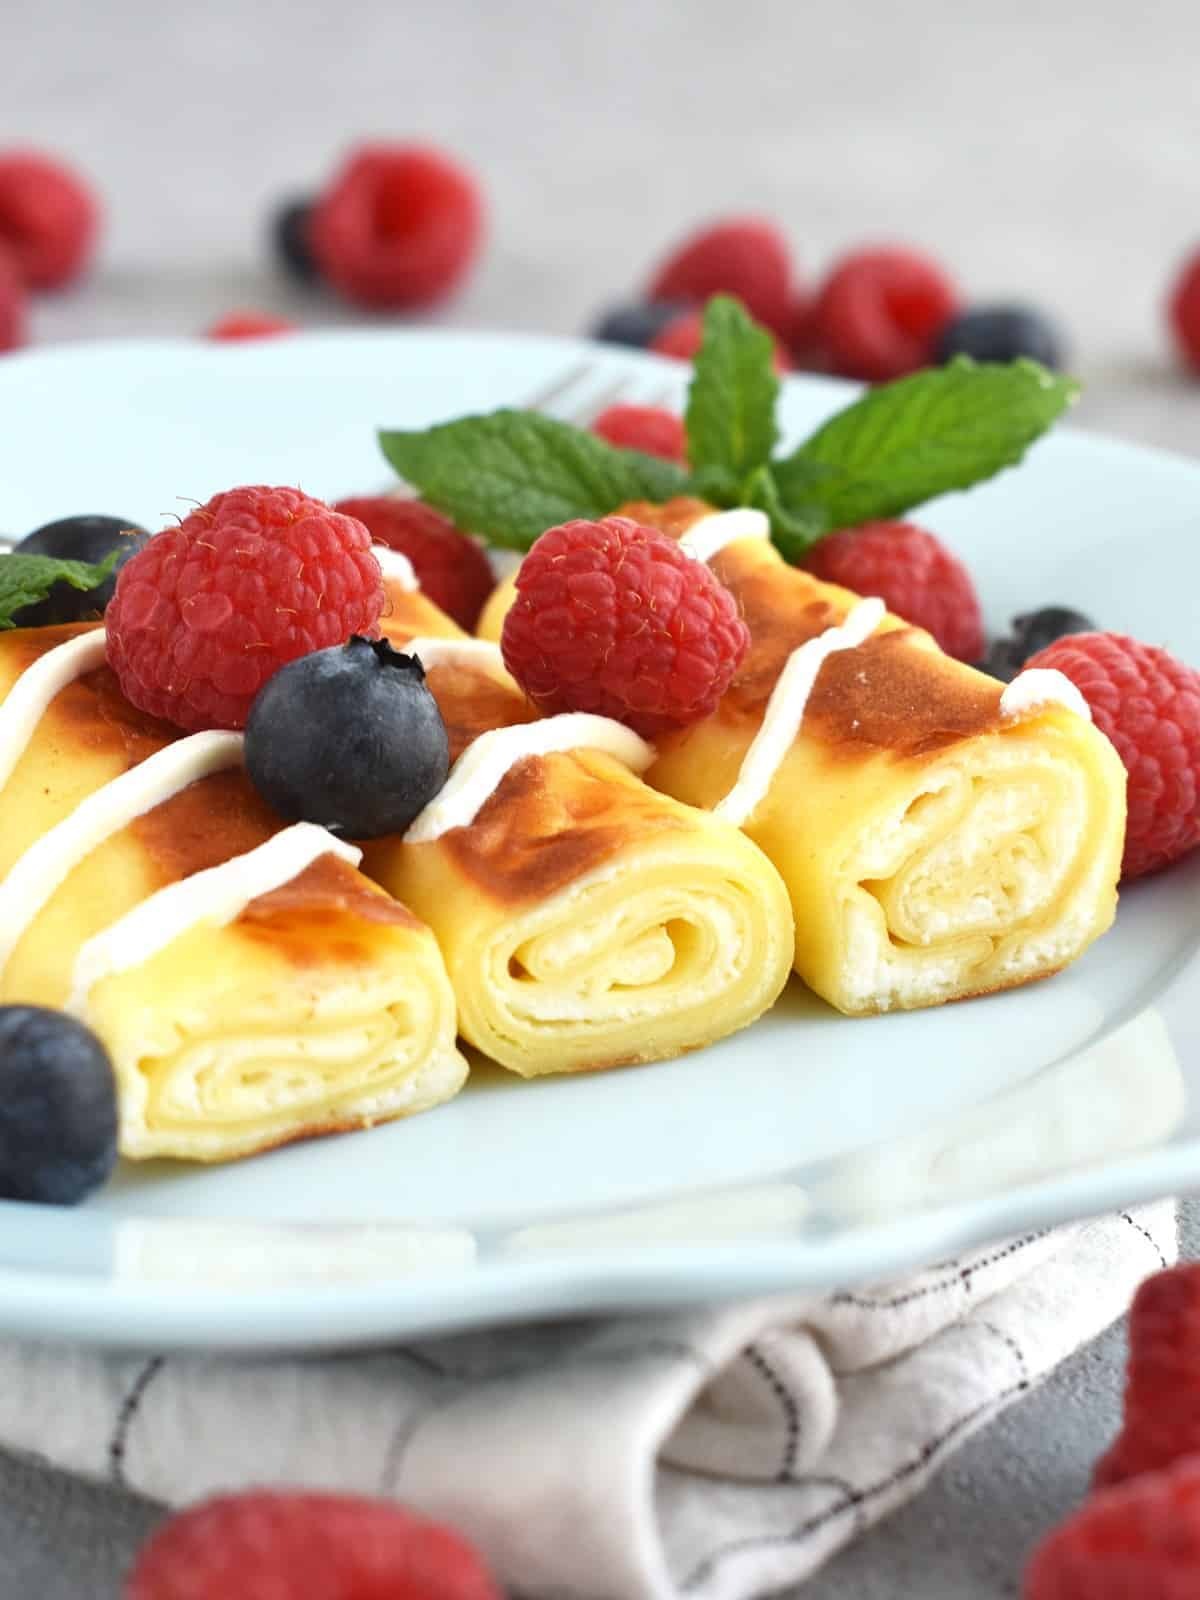 Crepes with Cheese (nalisniki): thin and delicate filled with farmer's cheese filling that melts when you cook in butter or oil. This dish can be made ahead of time, either in full or in part. | olgainthekitchen.com